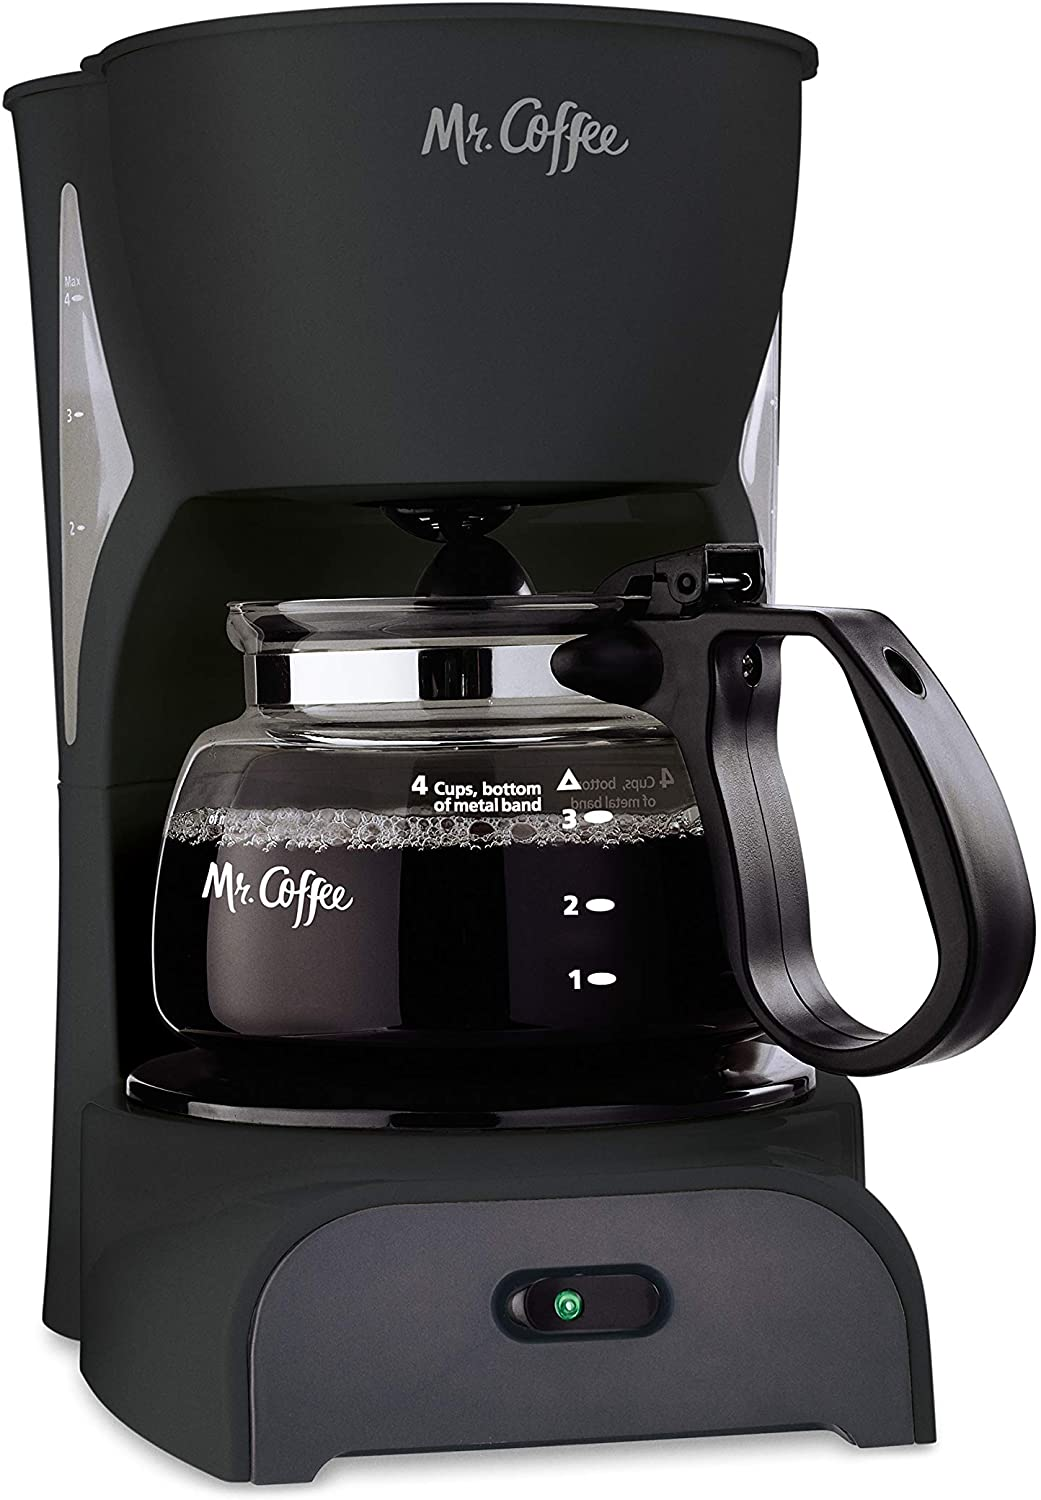 MR. COFFEE SIMPLE BREW 4-CUP COFFEE MAKER